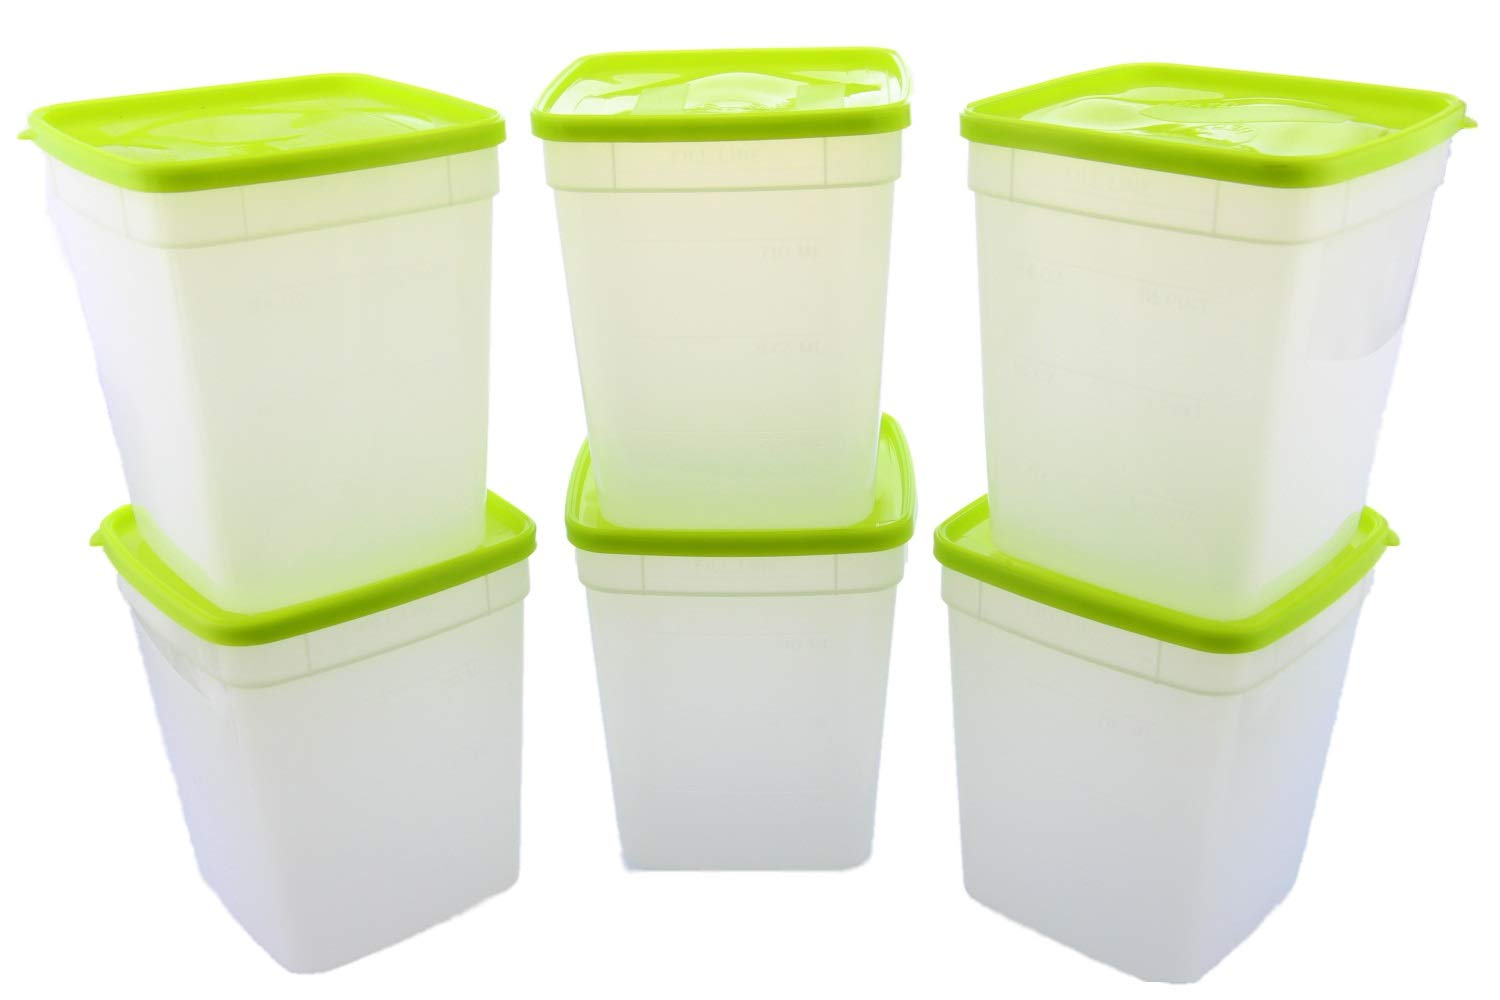 Arrow Plastic 1-Quart Freezer Containers, 3-Pack - Set of 2 (Total 6 Containers)